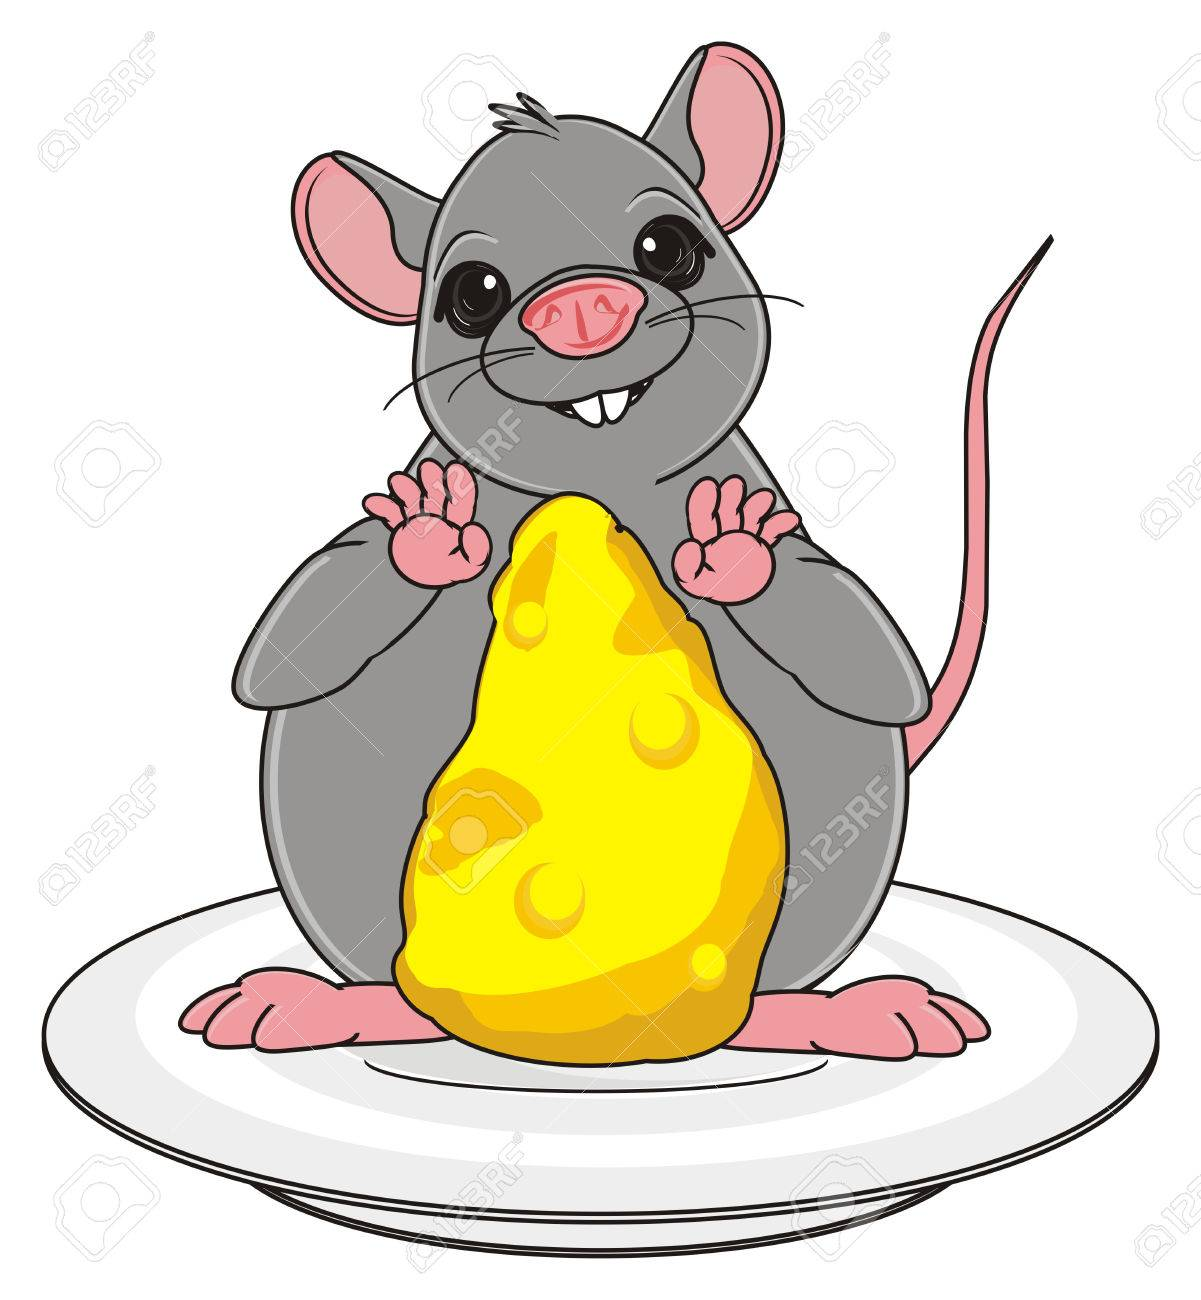 fat rat with cheese stand on the plate stock photo picture and